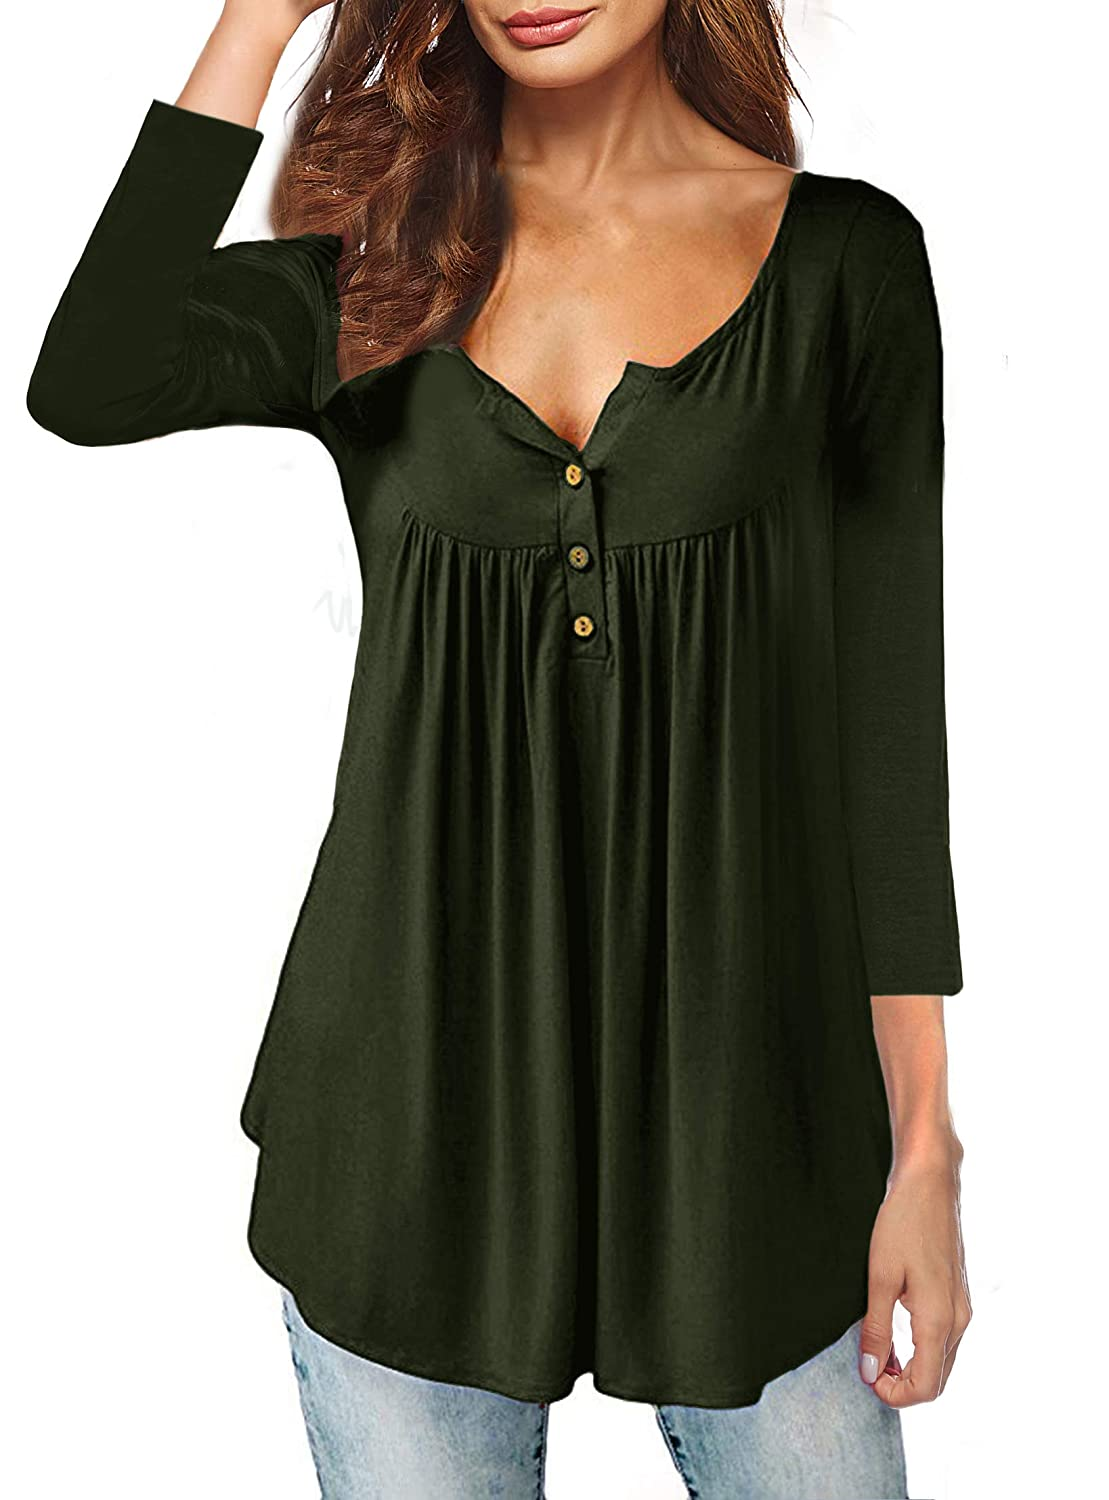 32f0a1f17 Bust: (S)40.16 inches (M)42.13 inches (L)44.09 inches (XL)46.46 inches  (2XL)49.61 inches. Material: 95% Rayon+5% Spandex, soft,comfortable,stretchy  and ...